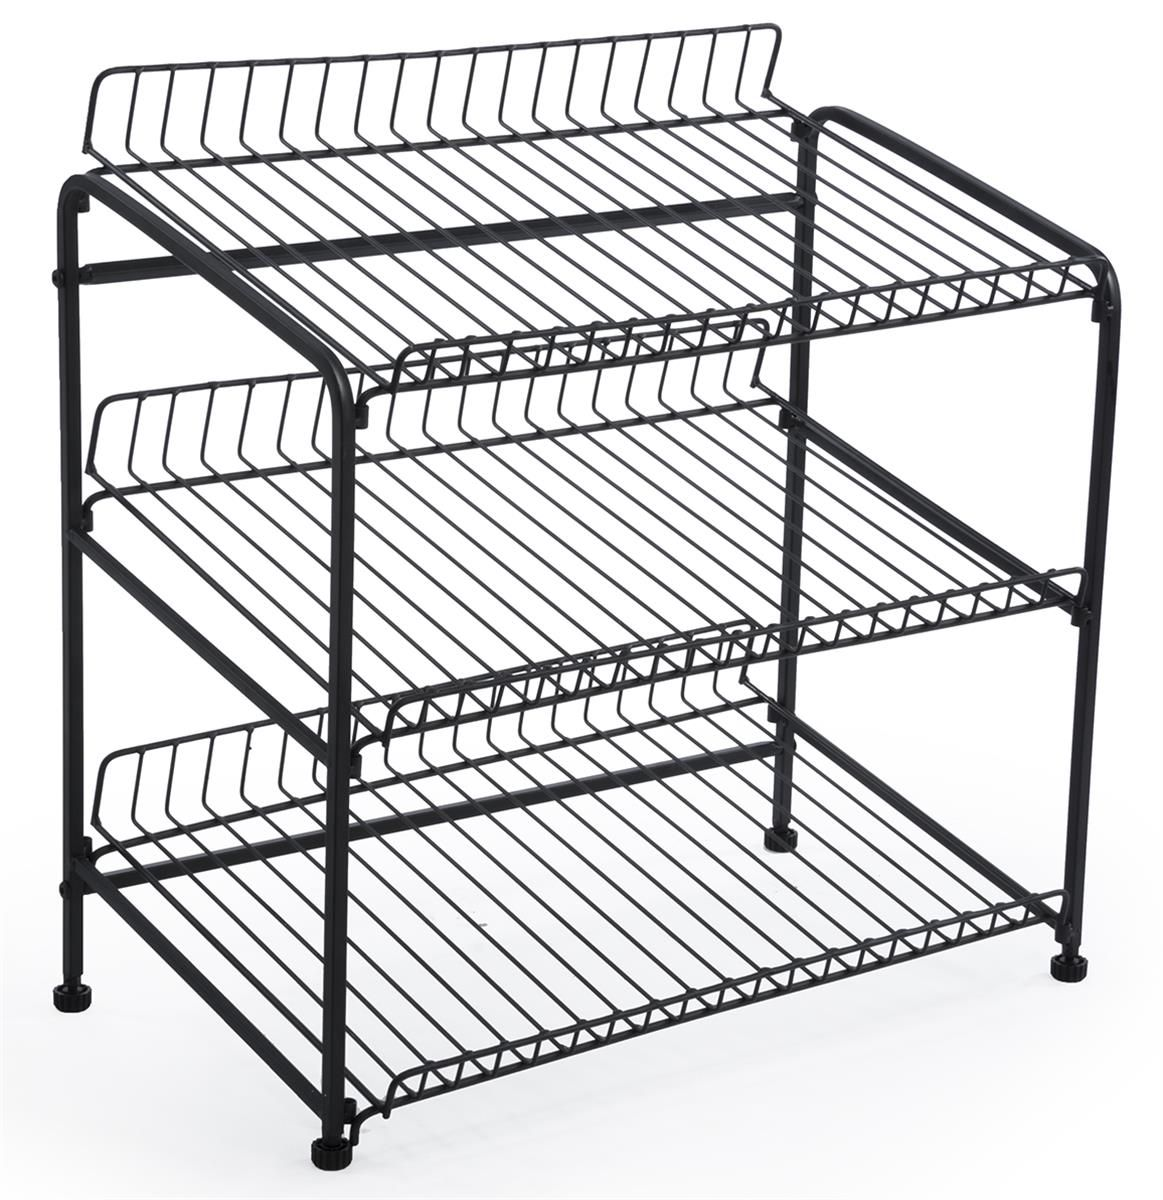 Wire Rack for Countertop Use with 3 Open Shelves, Black | Wire racks ...